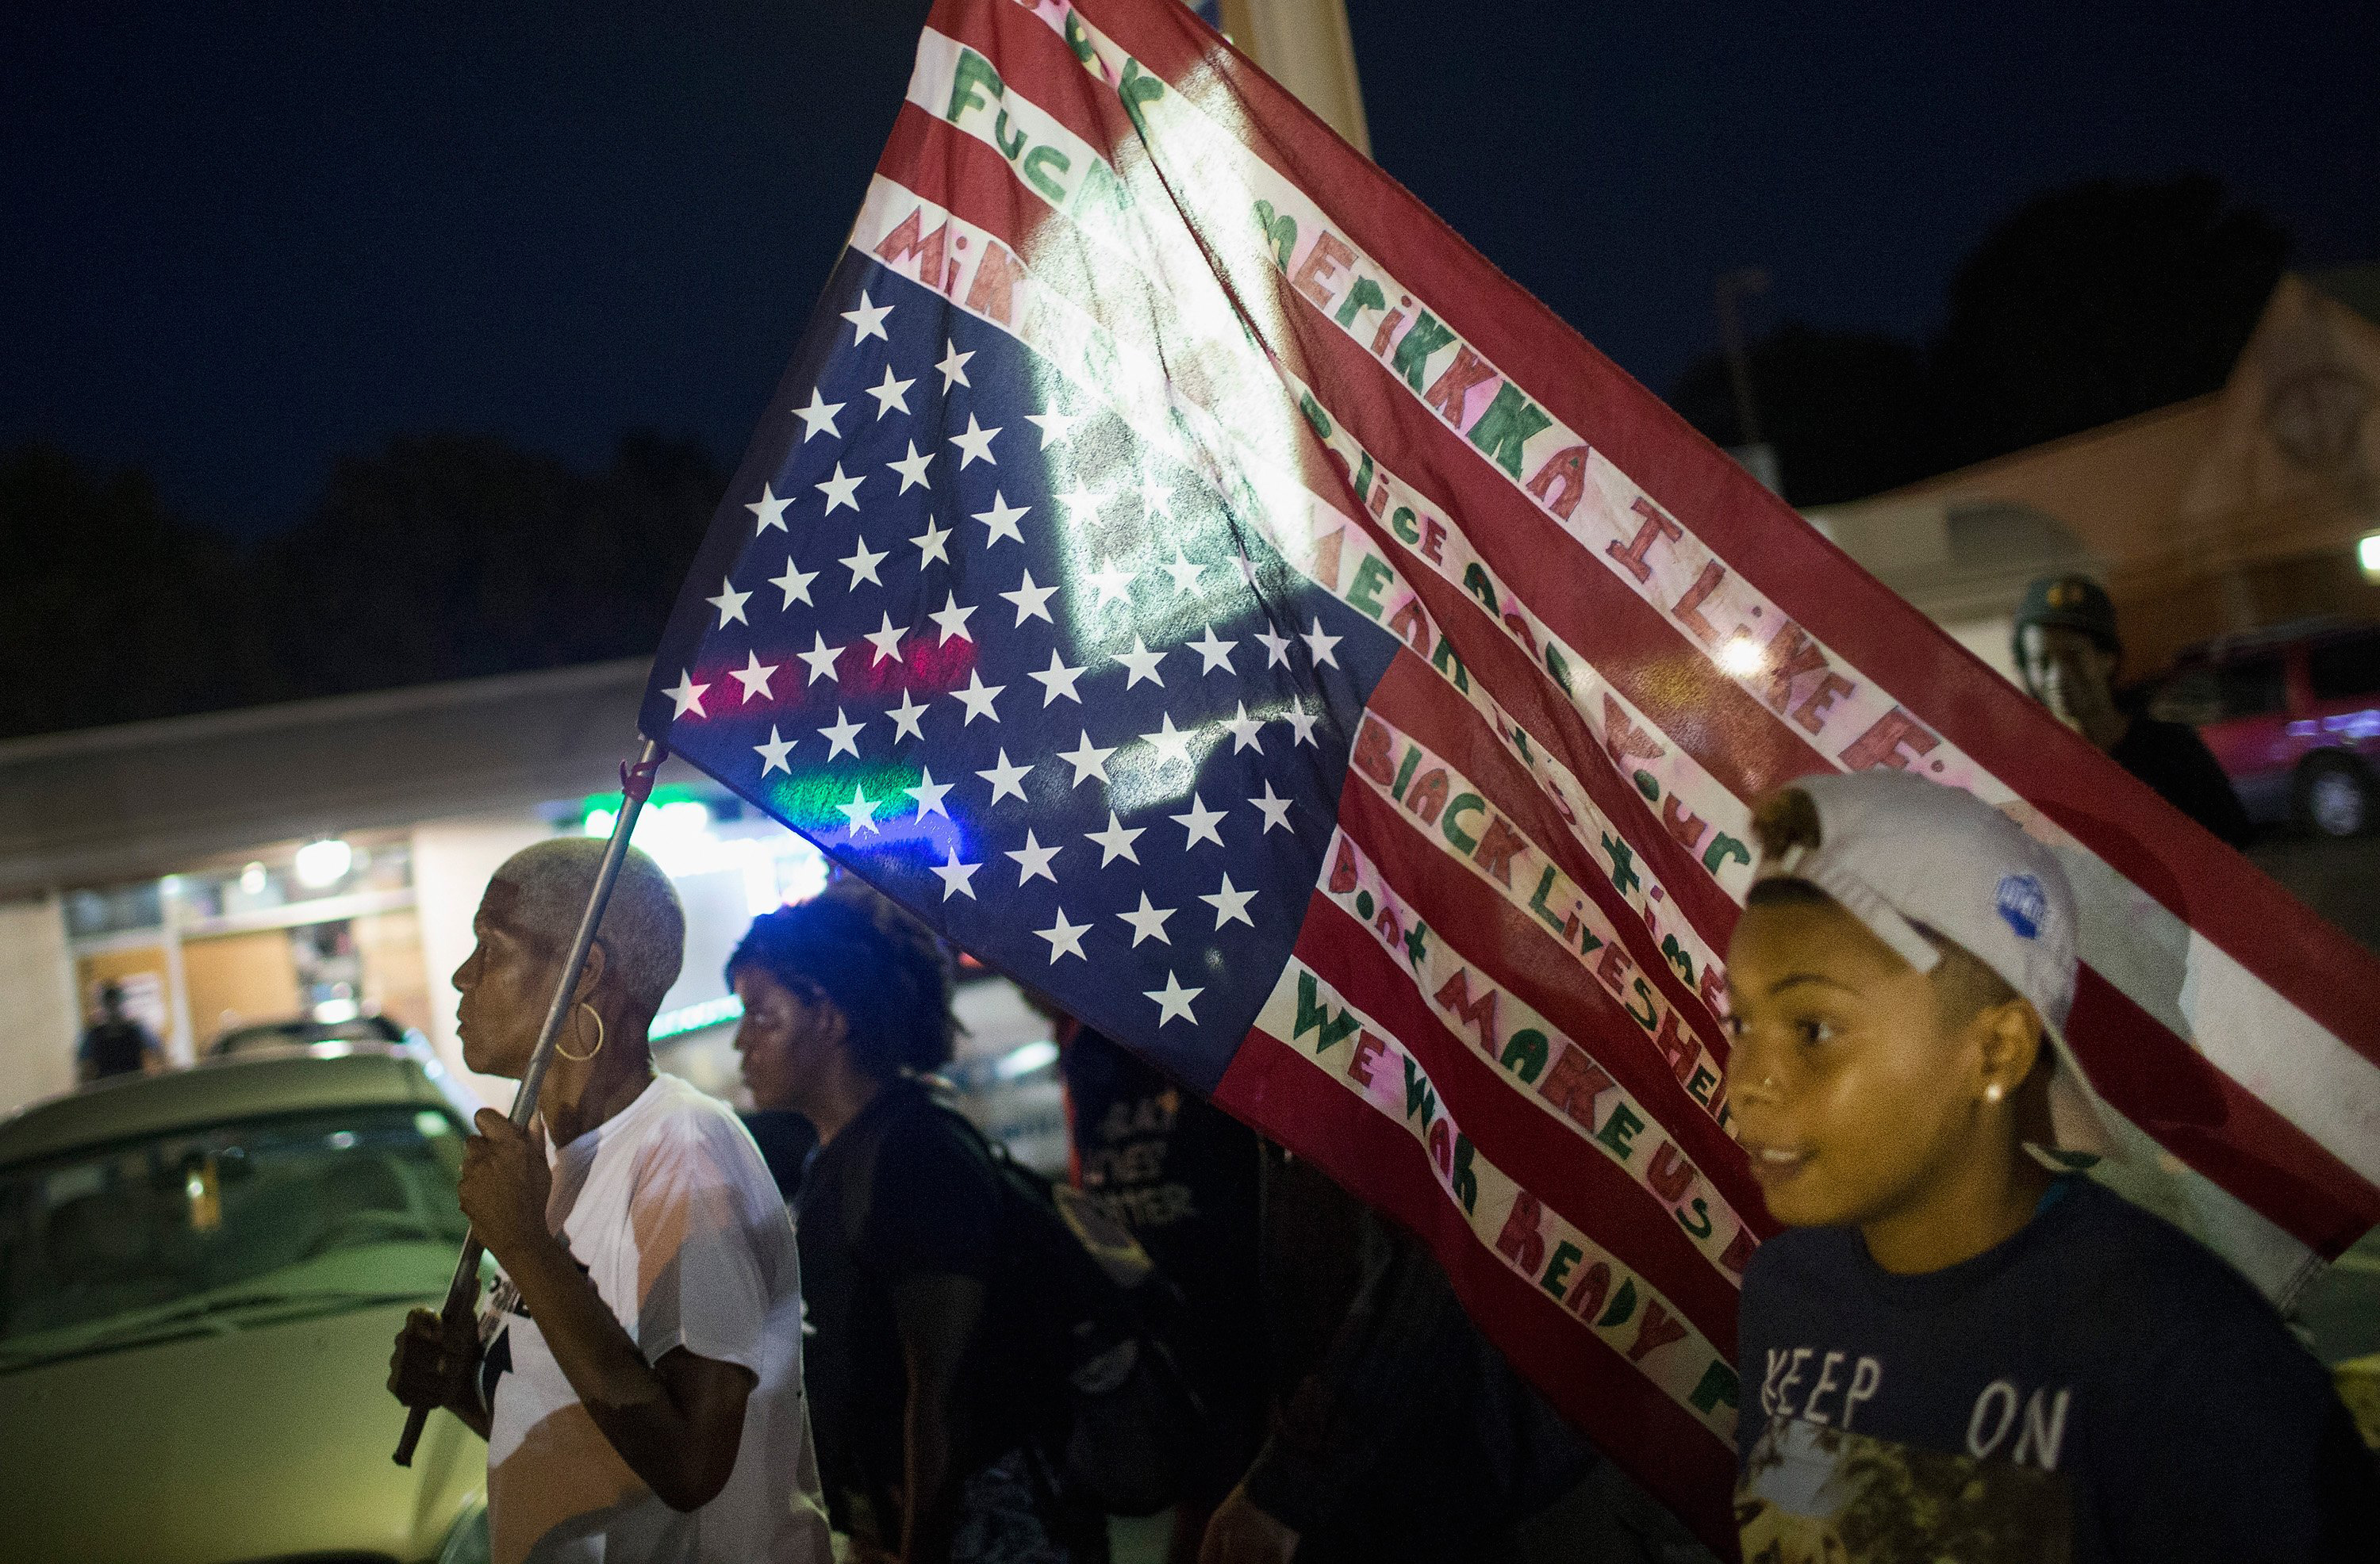 Demonstrators, marking the one-year anniversary of the shooting of Michael Brown, protest along West Florrisant Street on Aug. 10, 2015 in Ferguson, Mo.